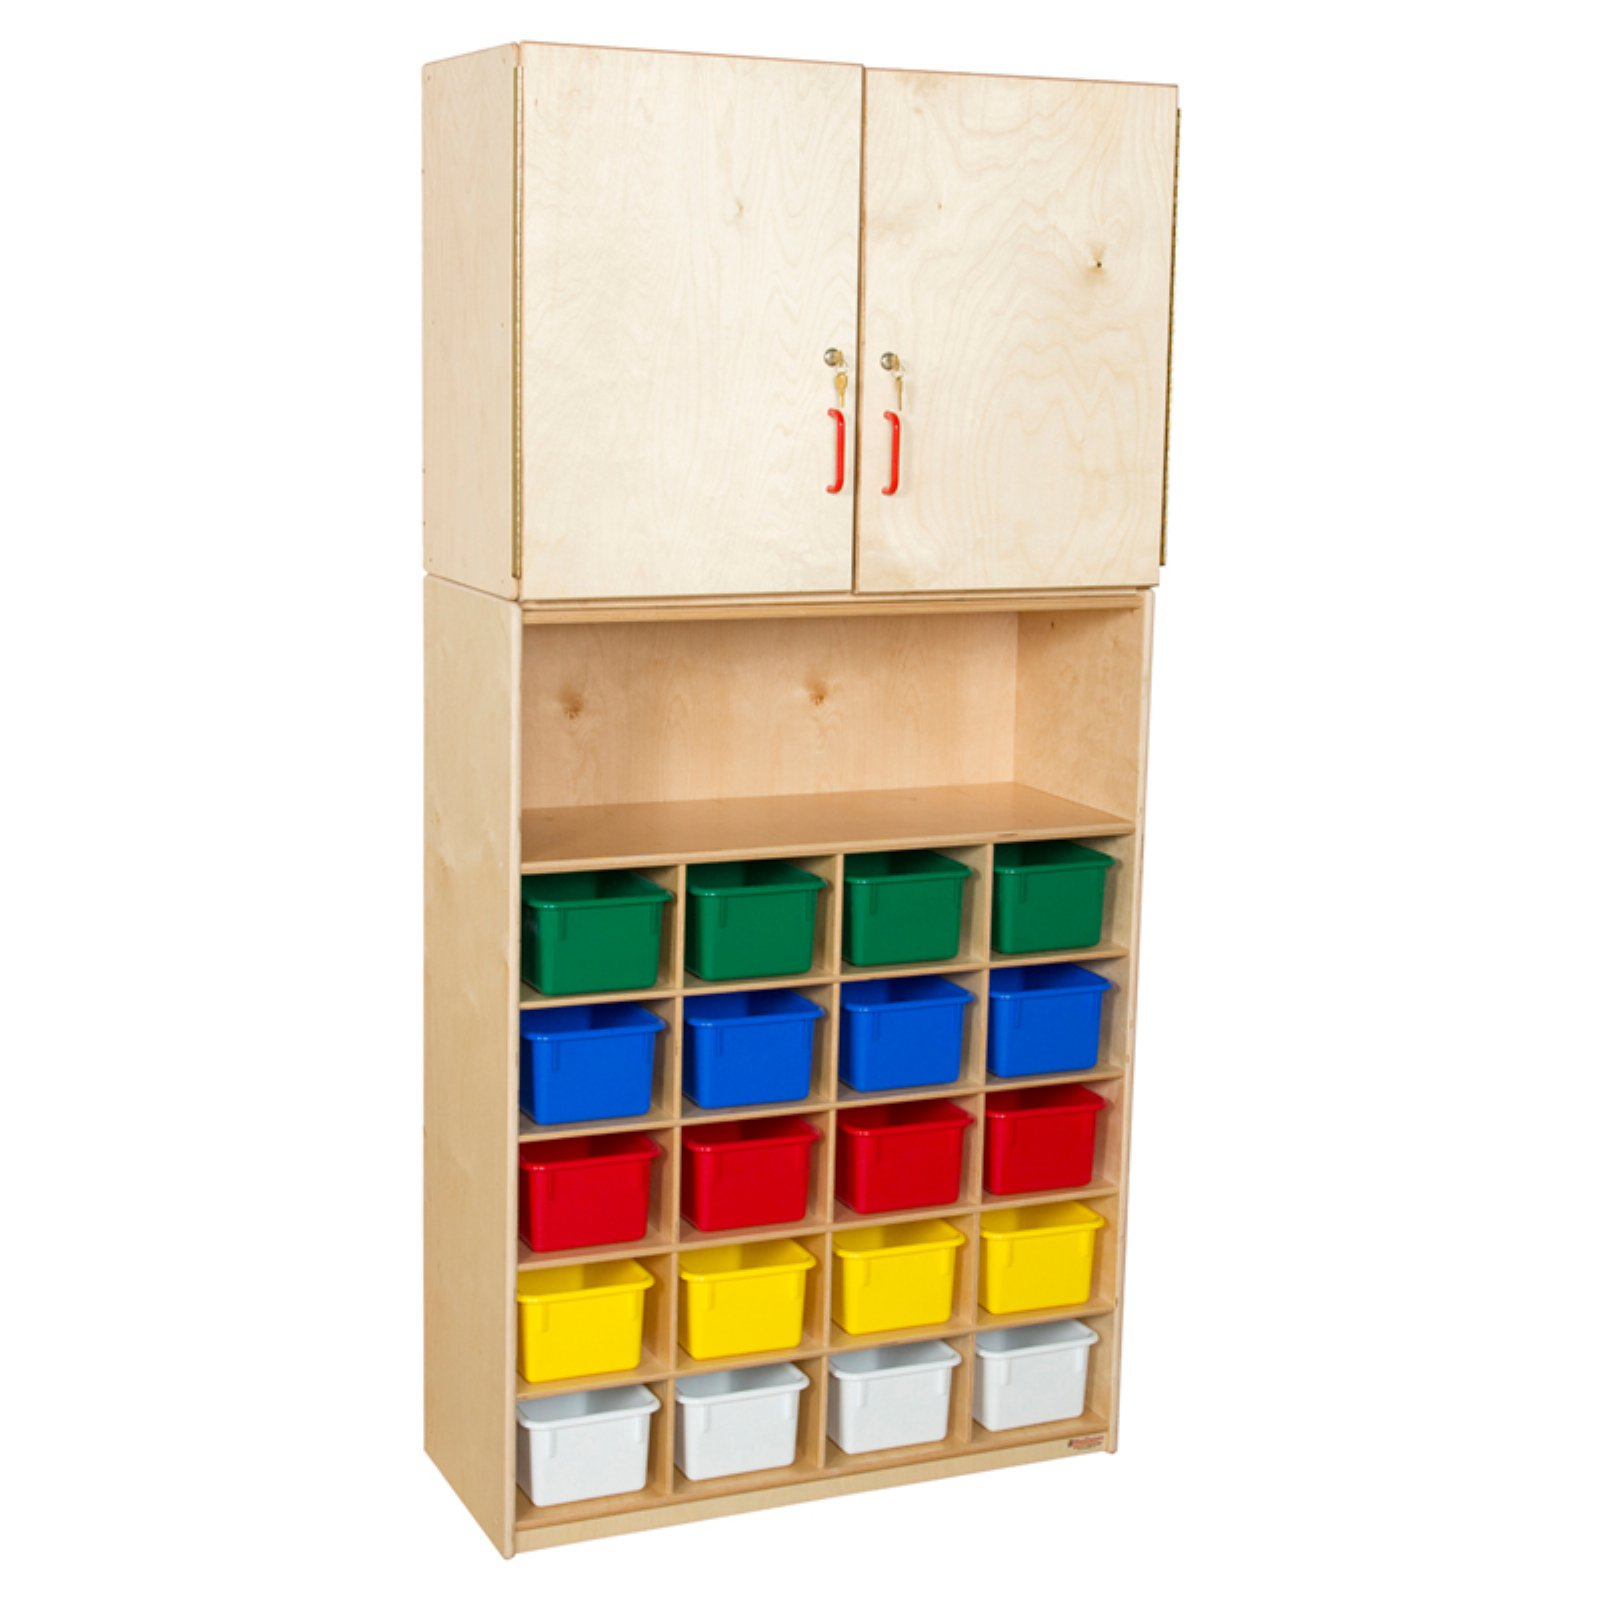 Wood Designs 20 Tray Vertical Storage Cabinet with Trays